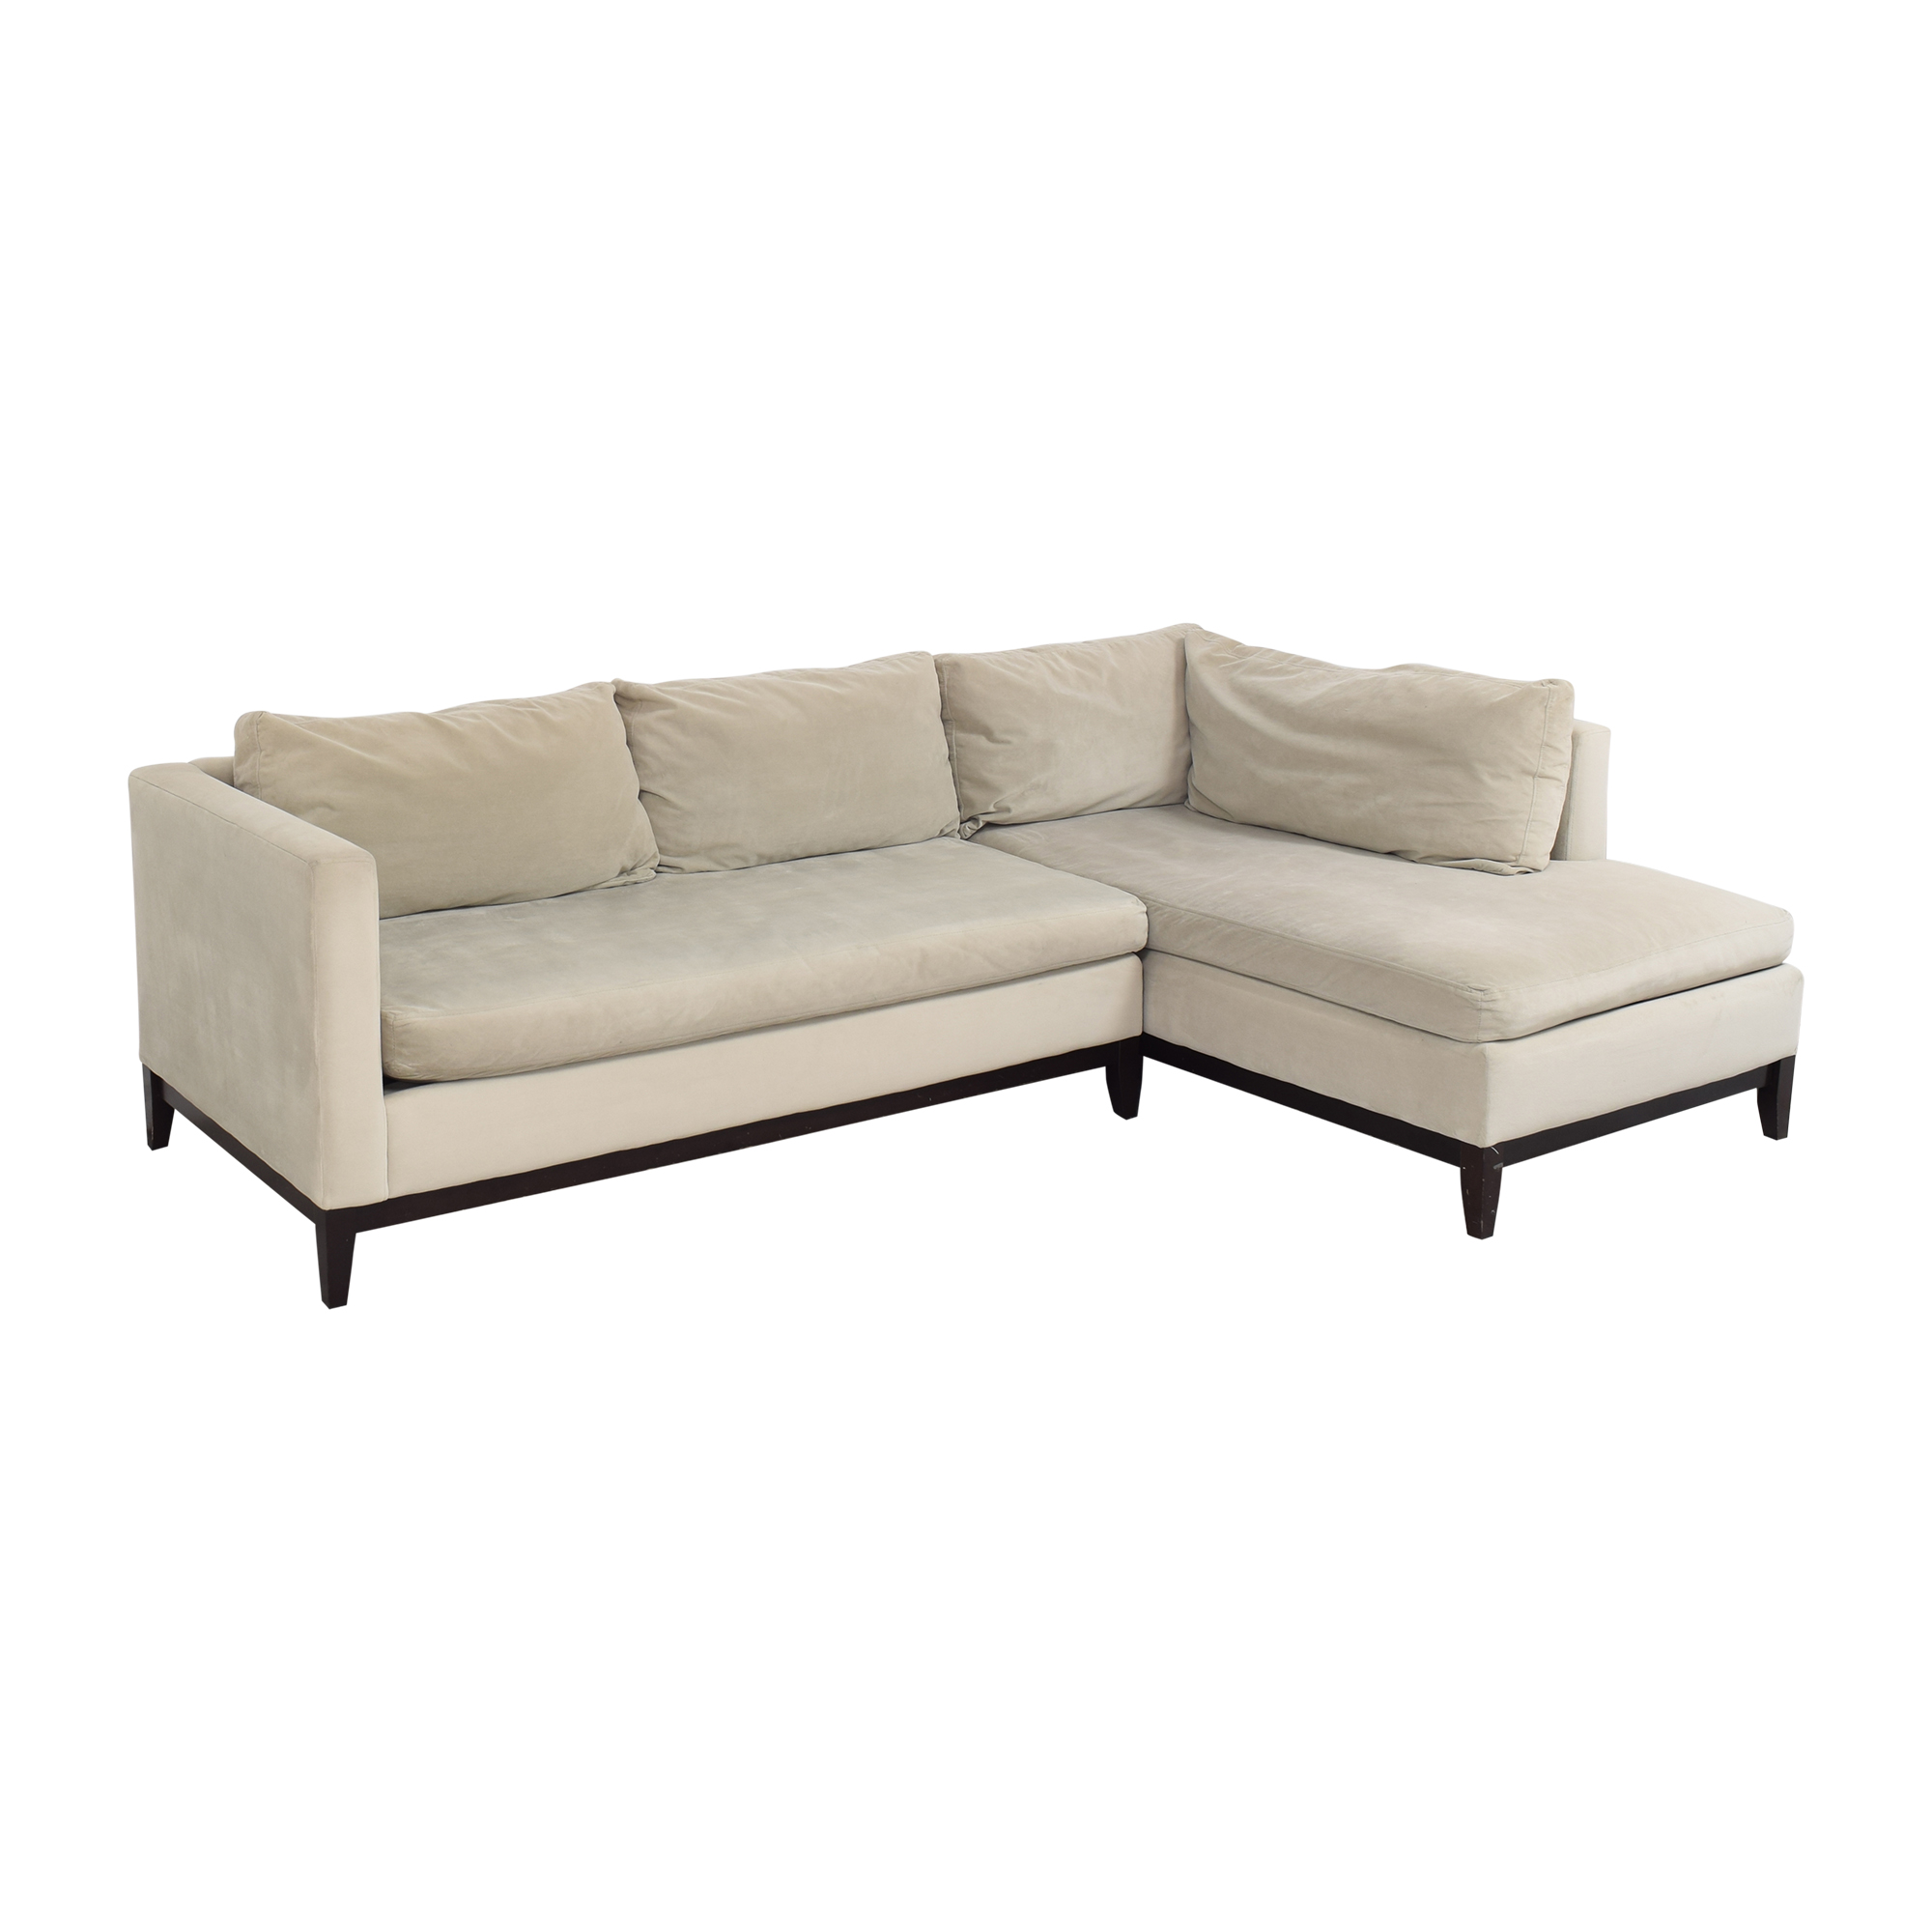 West Elm West Elm Blake Two Piece Chaise Sectional on sale